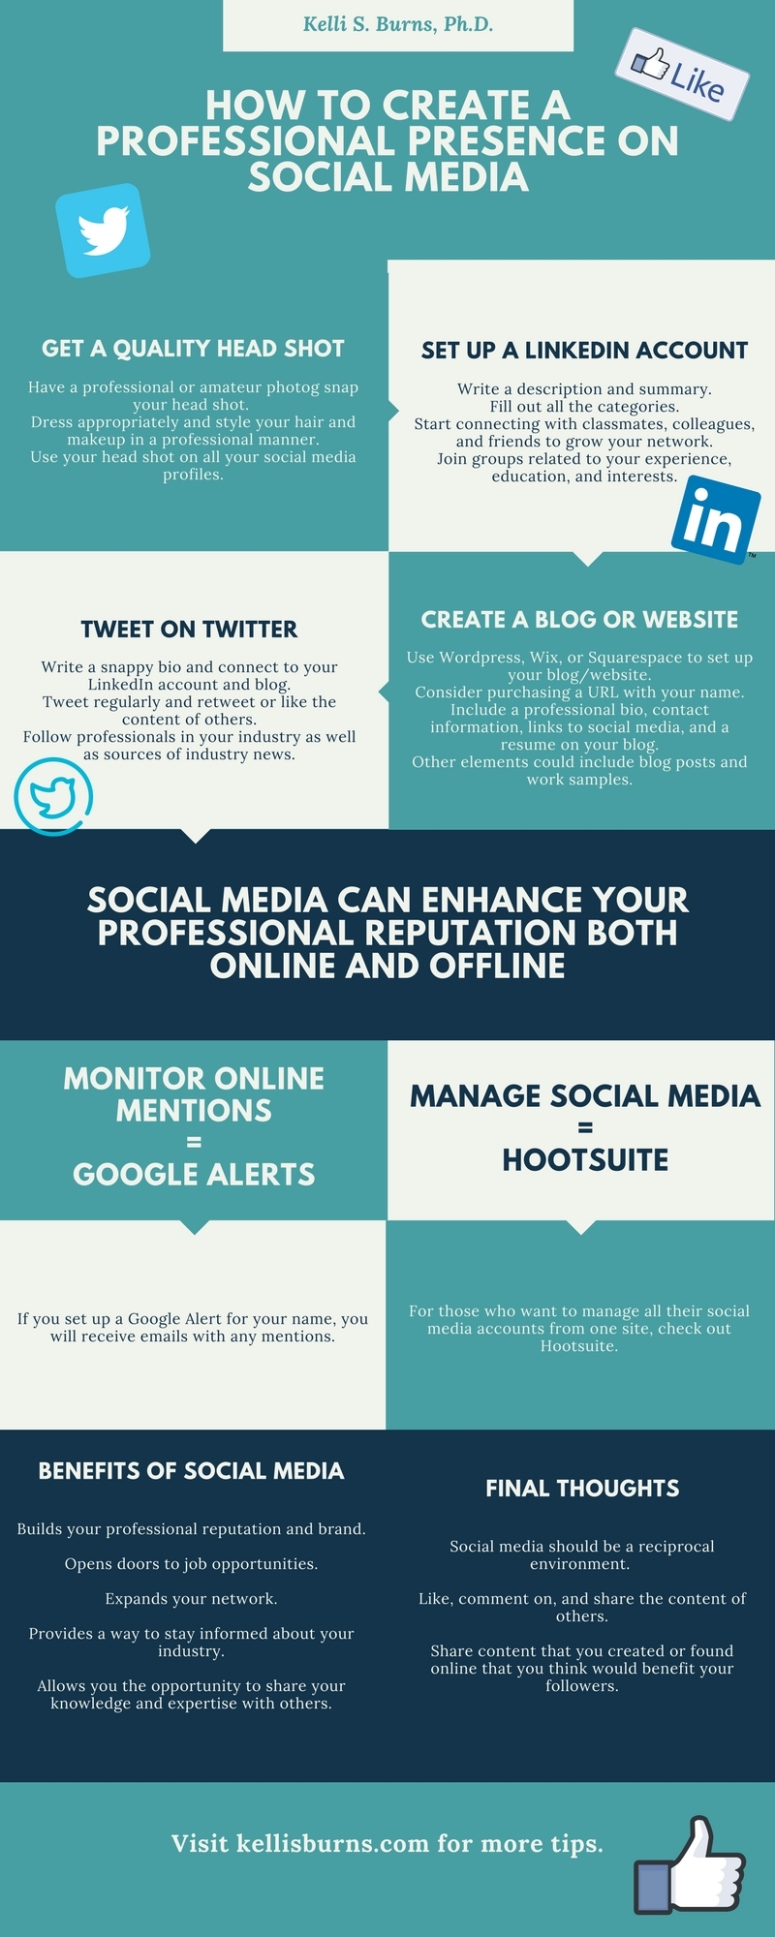 How to Create a Professional Presence on Social Media